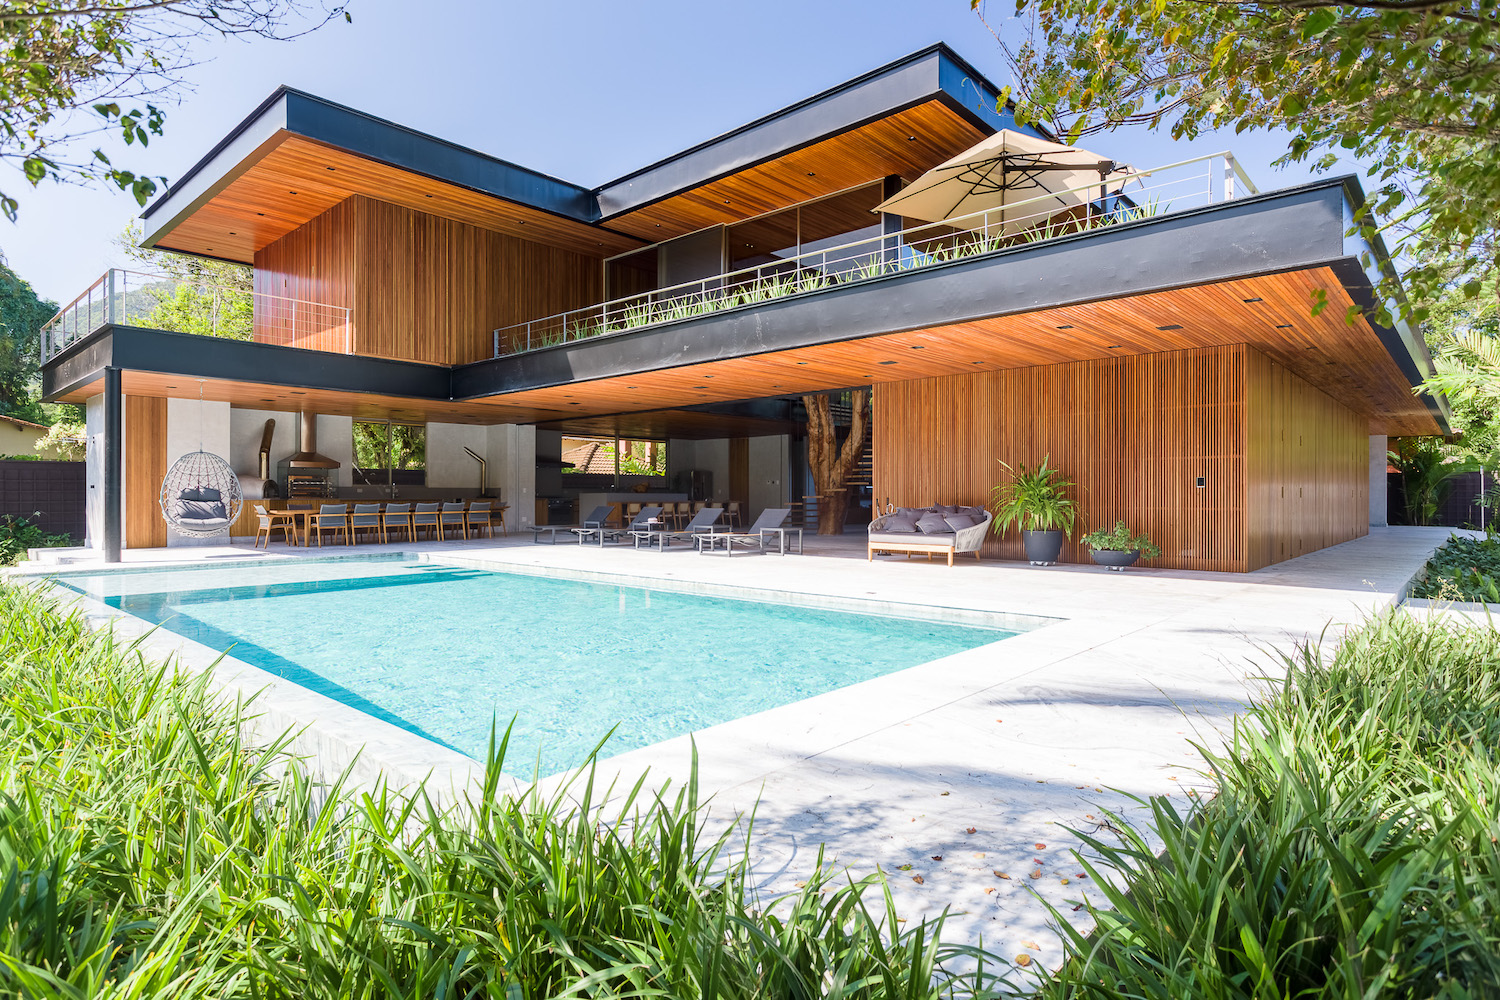 modern house with pool in Brazil